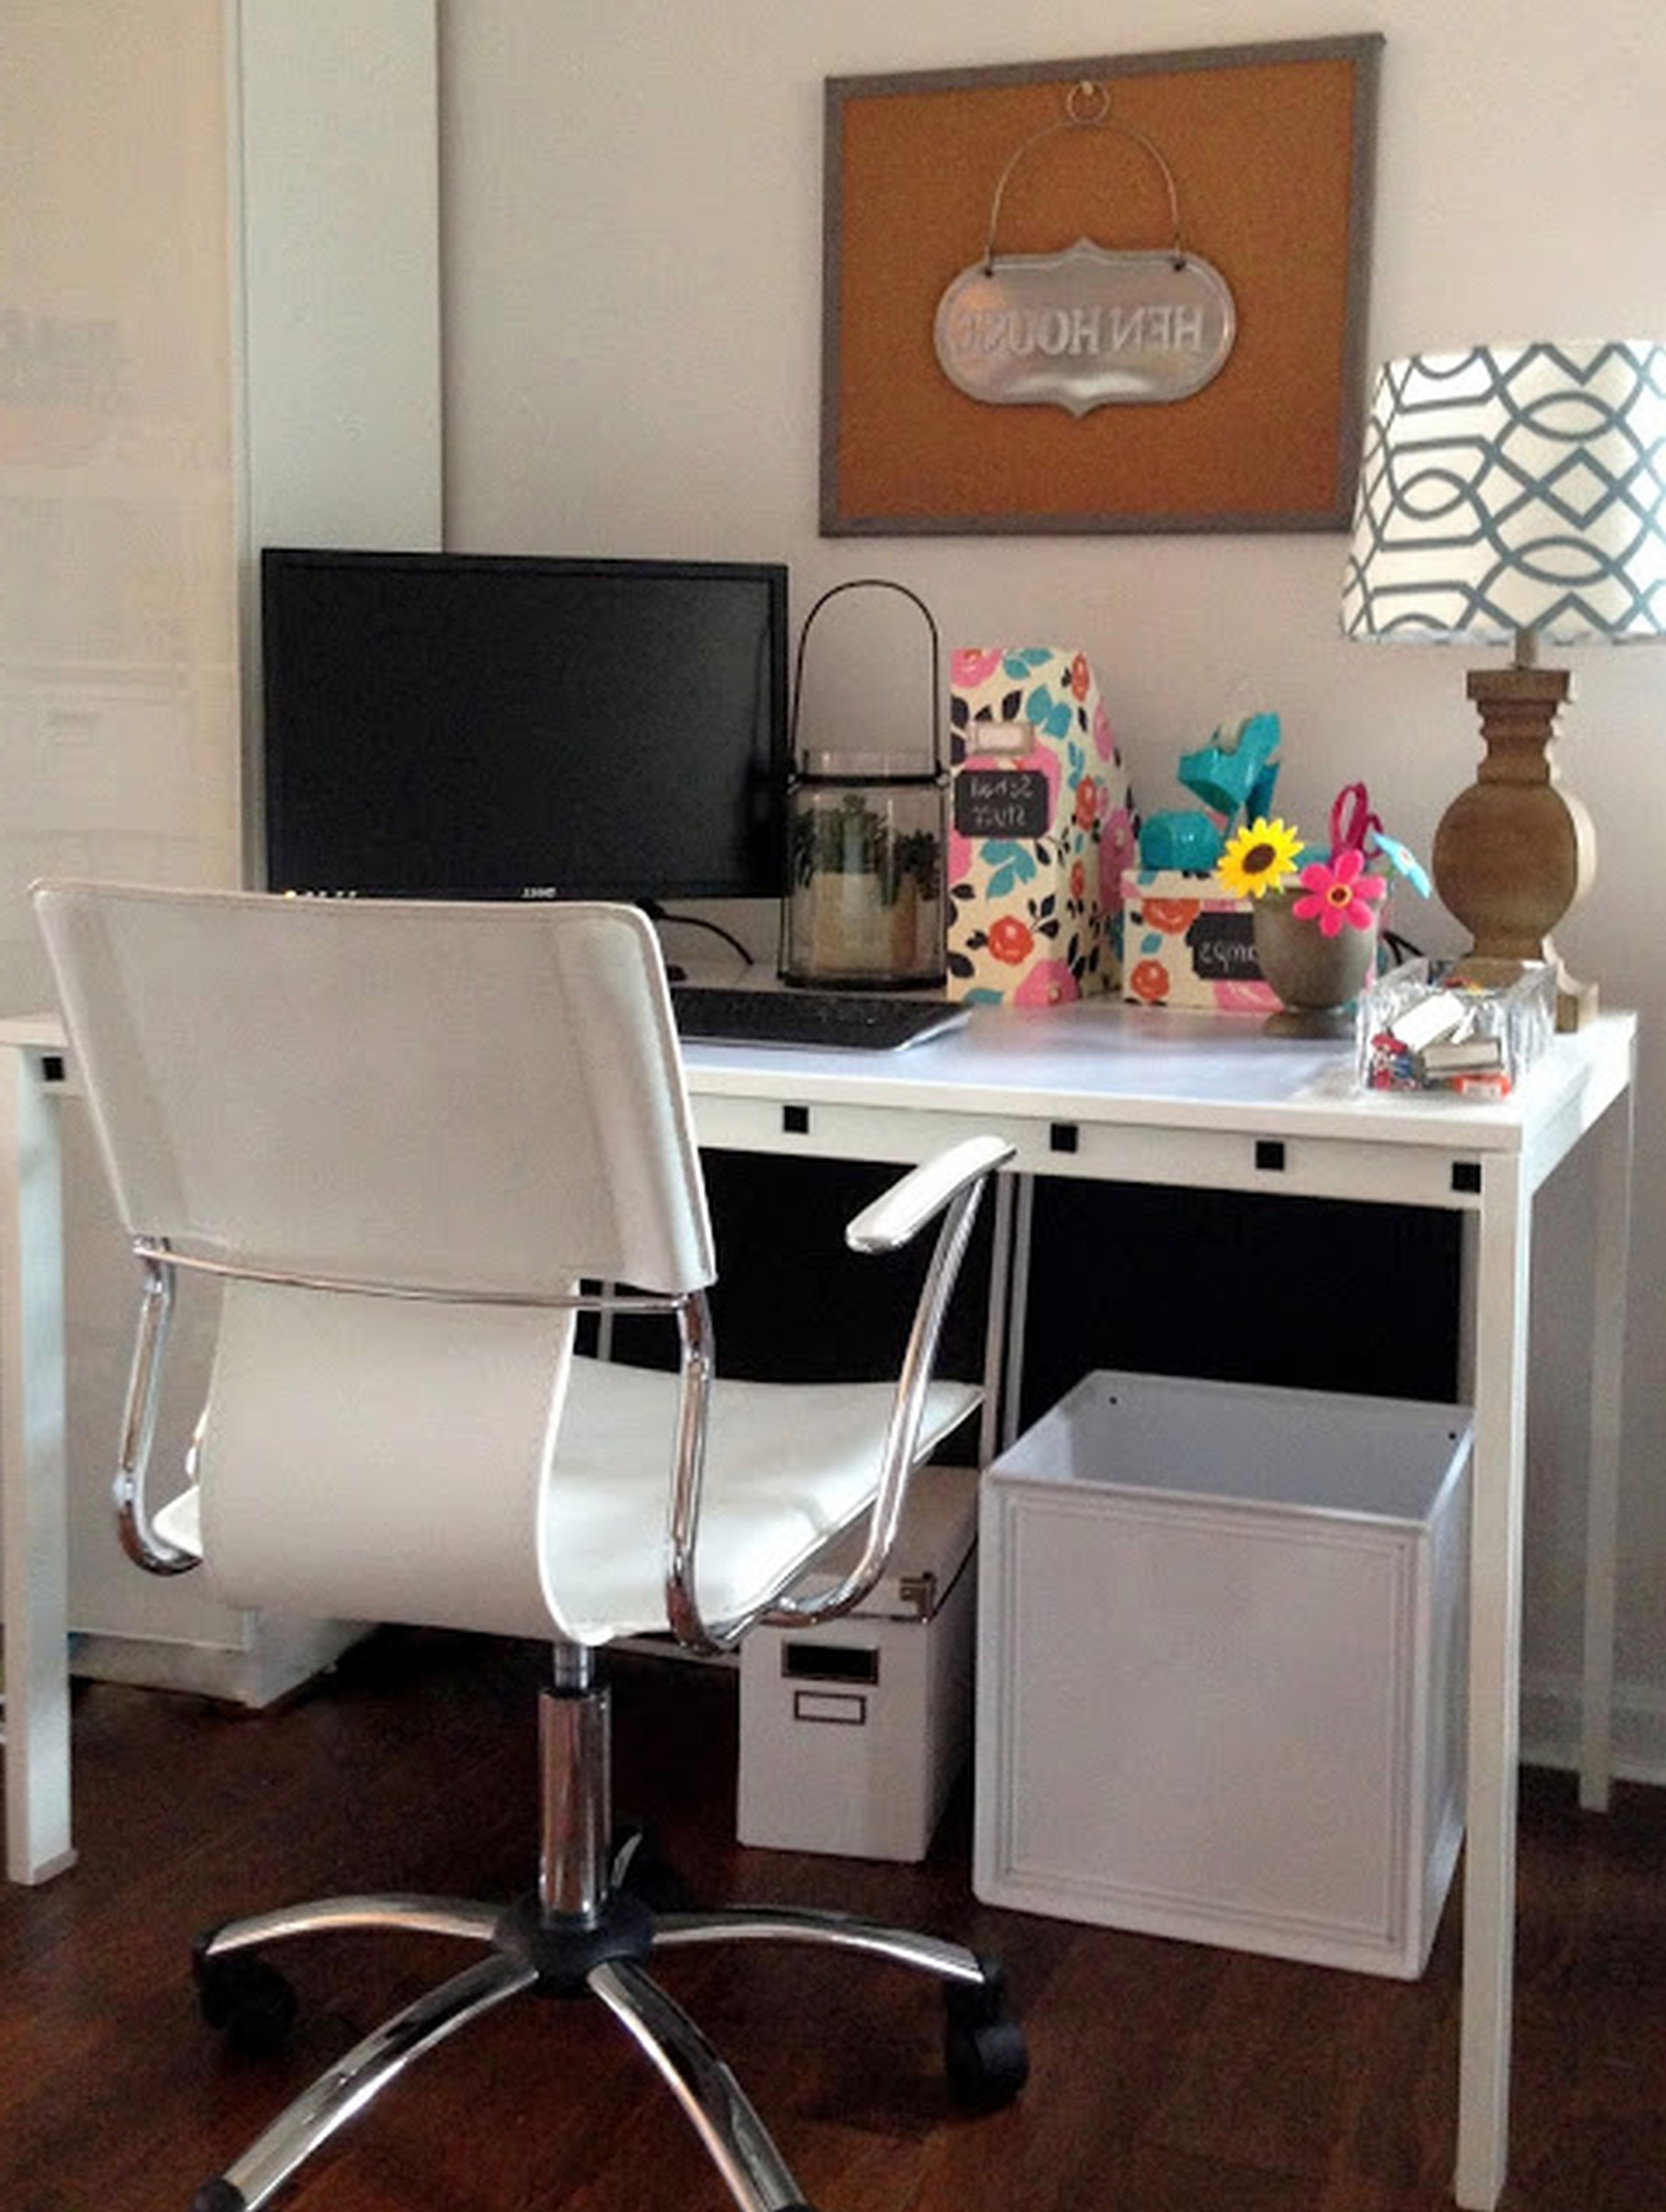 Best Selections Of Ikea Desks For Small Spaces